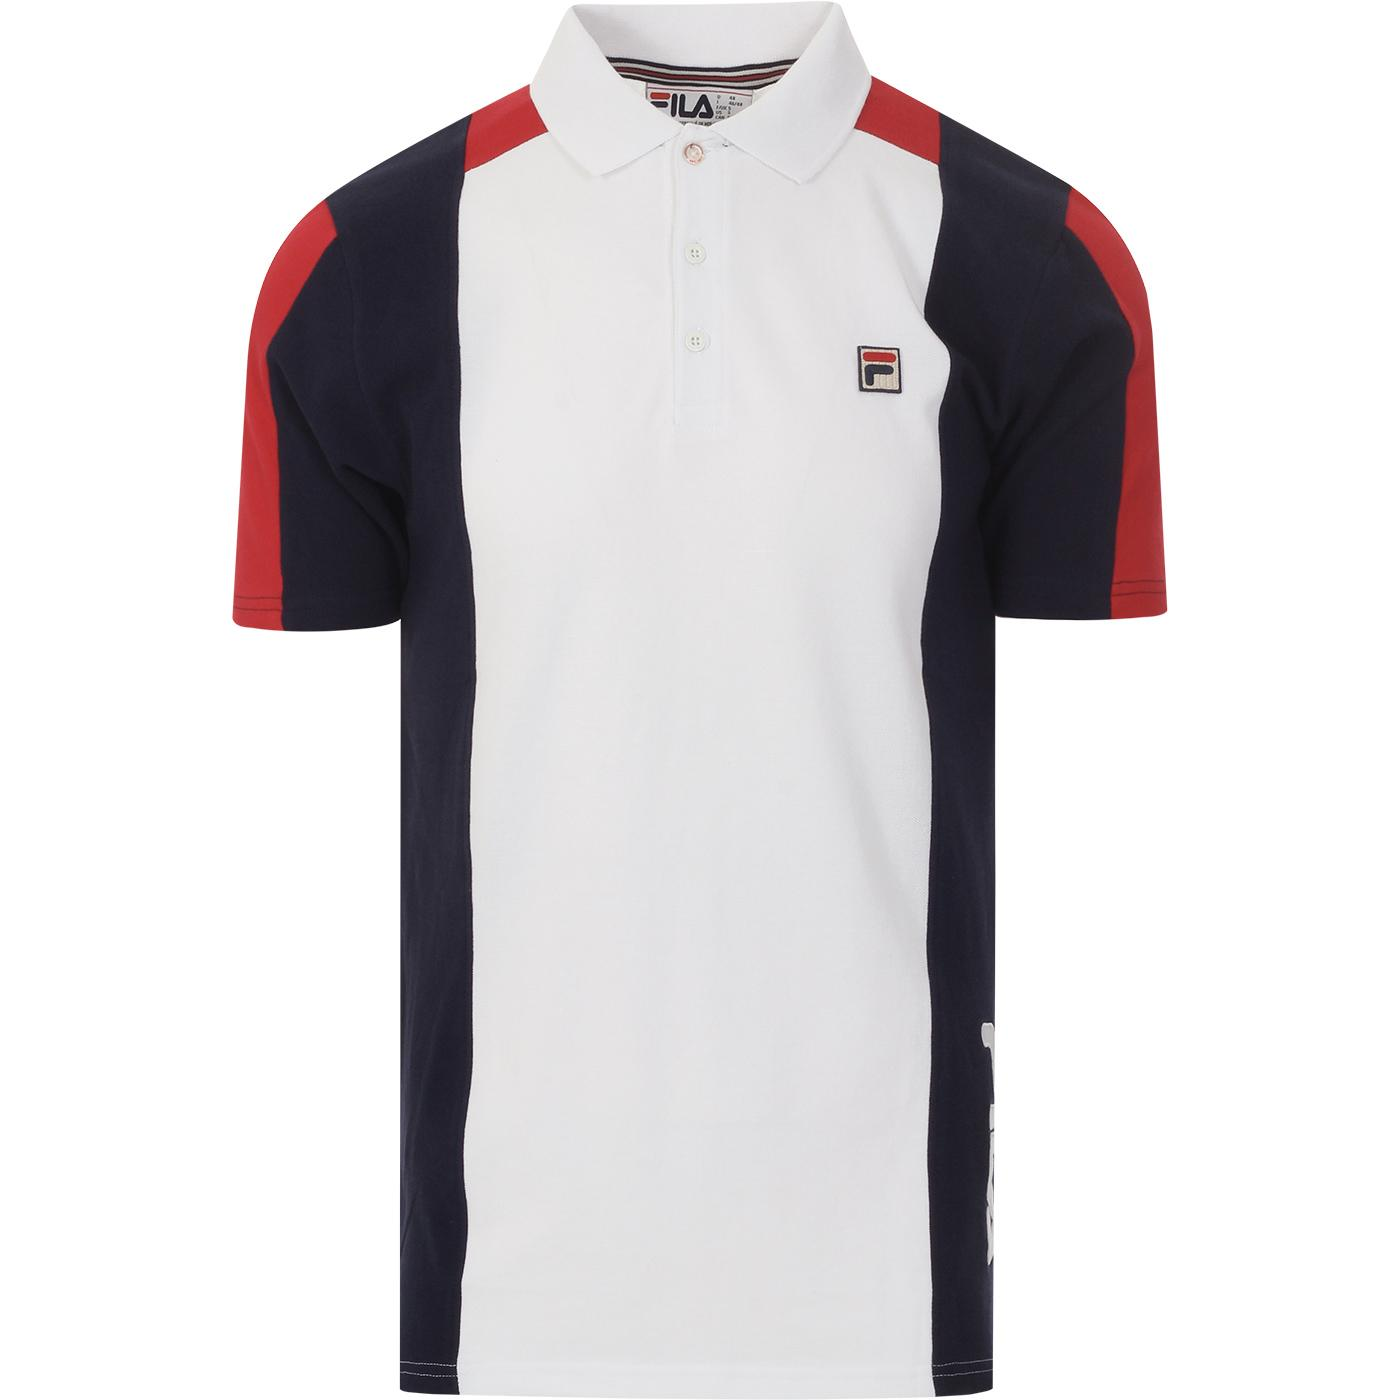 Apache FILA VINTAGE Colour Block Retro Polo WHITE